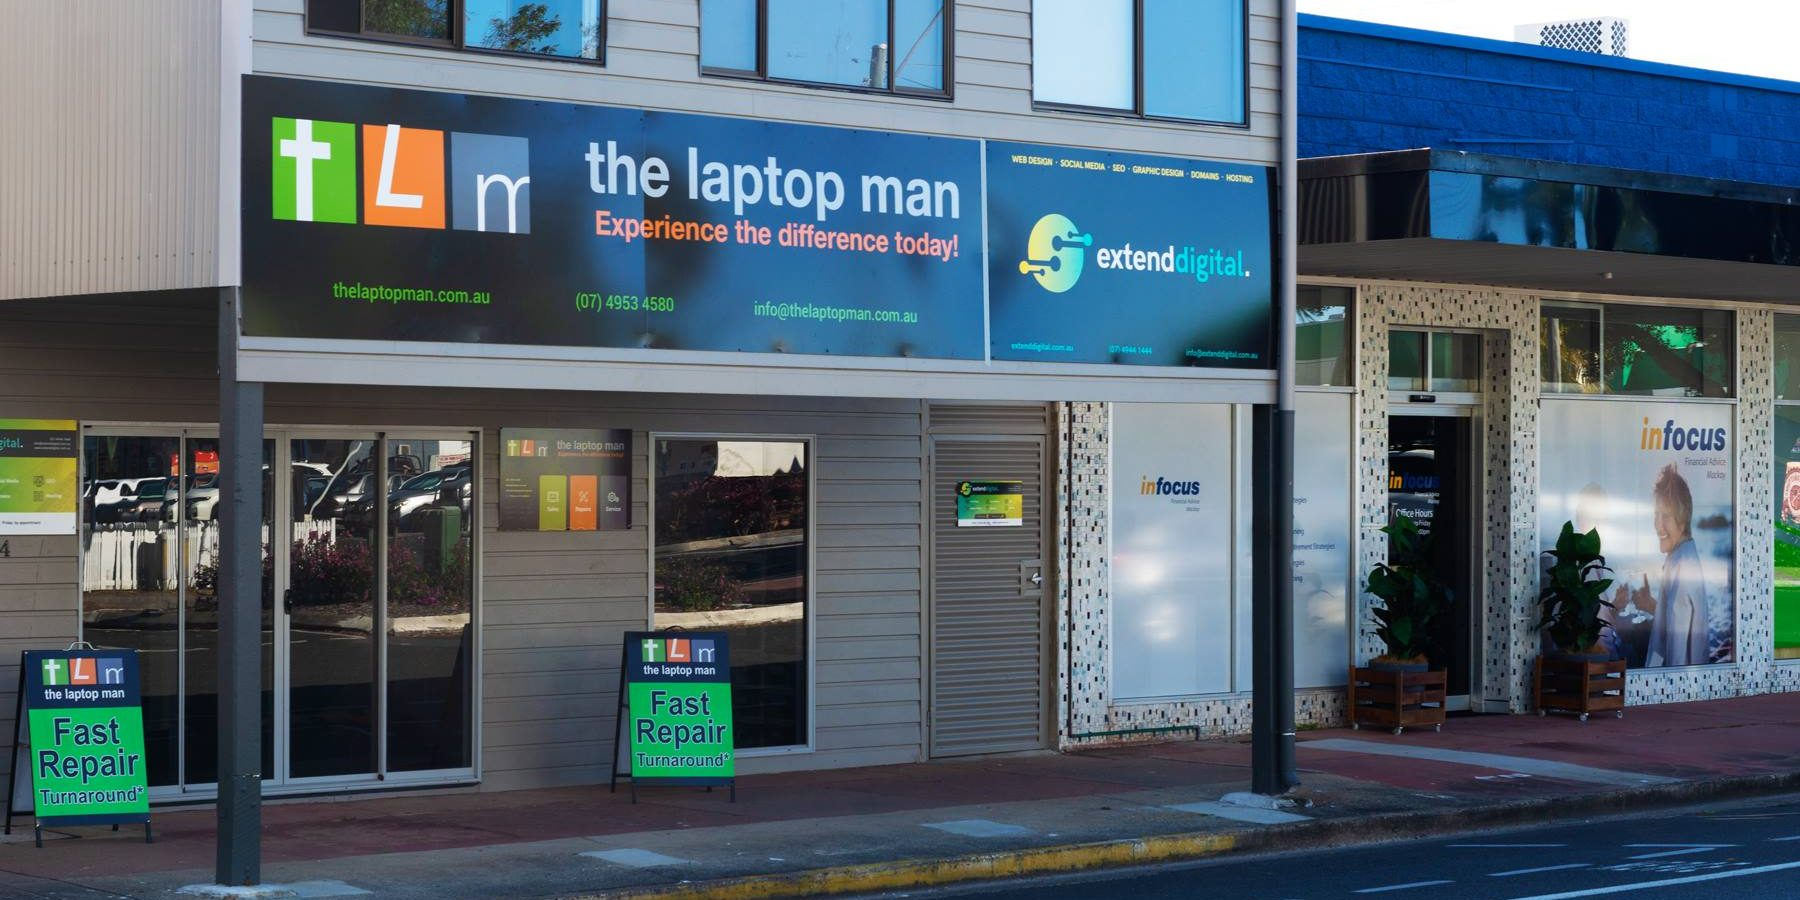 The Laptop Man Experience Difference Today Laptoptech Repair Specialist Spare Parts On July 17 Announced Their Decision To Close Three Stores Announcement Was Met With Shock By Local Community Hundreds